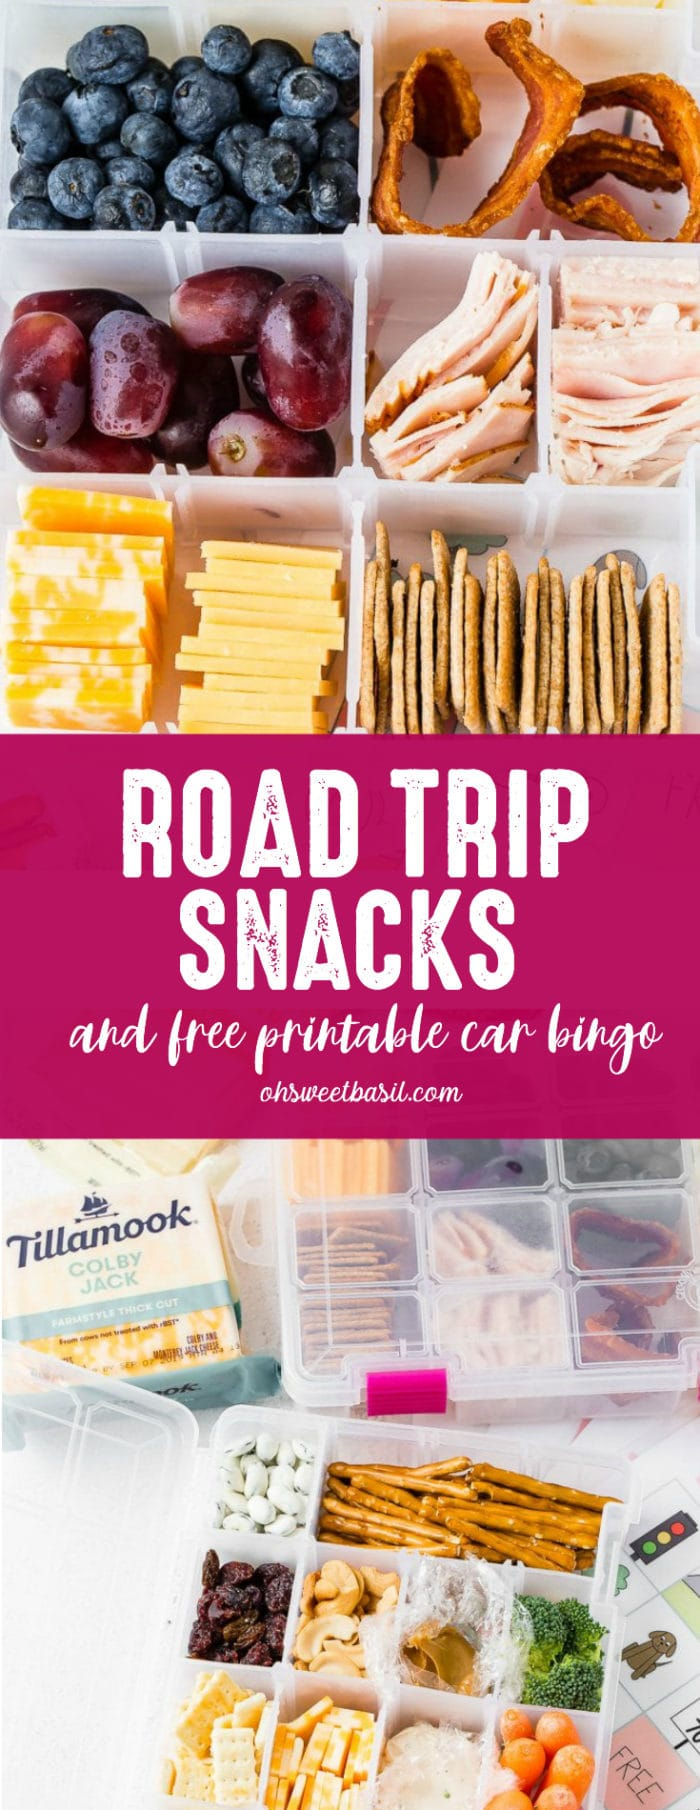 craft box usually used for beads or other crafts is filled with healthy snacks like nuts, fruits, mini sandwiches, cheese and crackers for a healthy road trip snack box